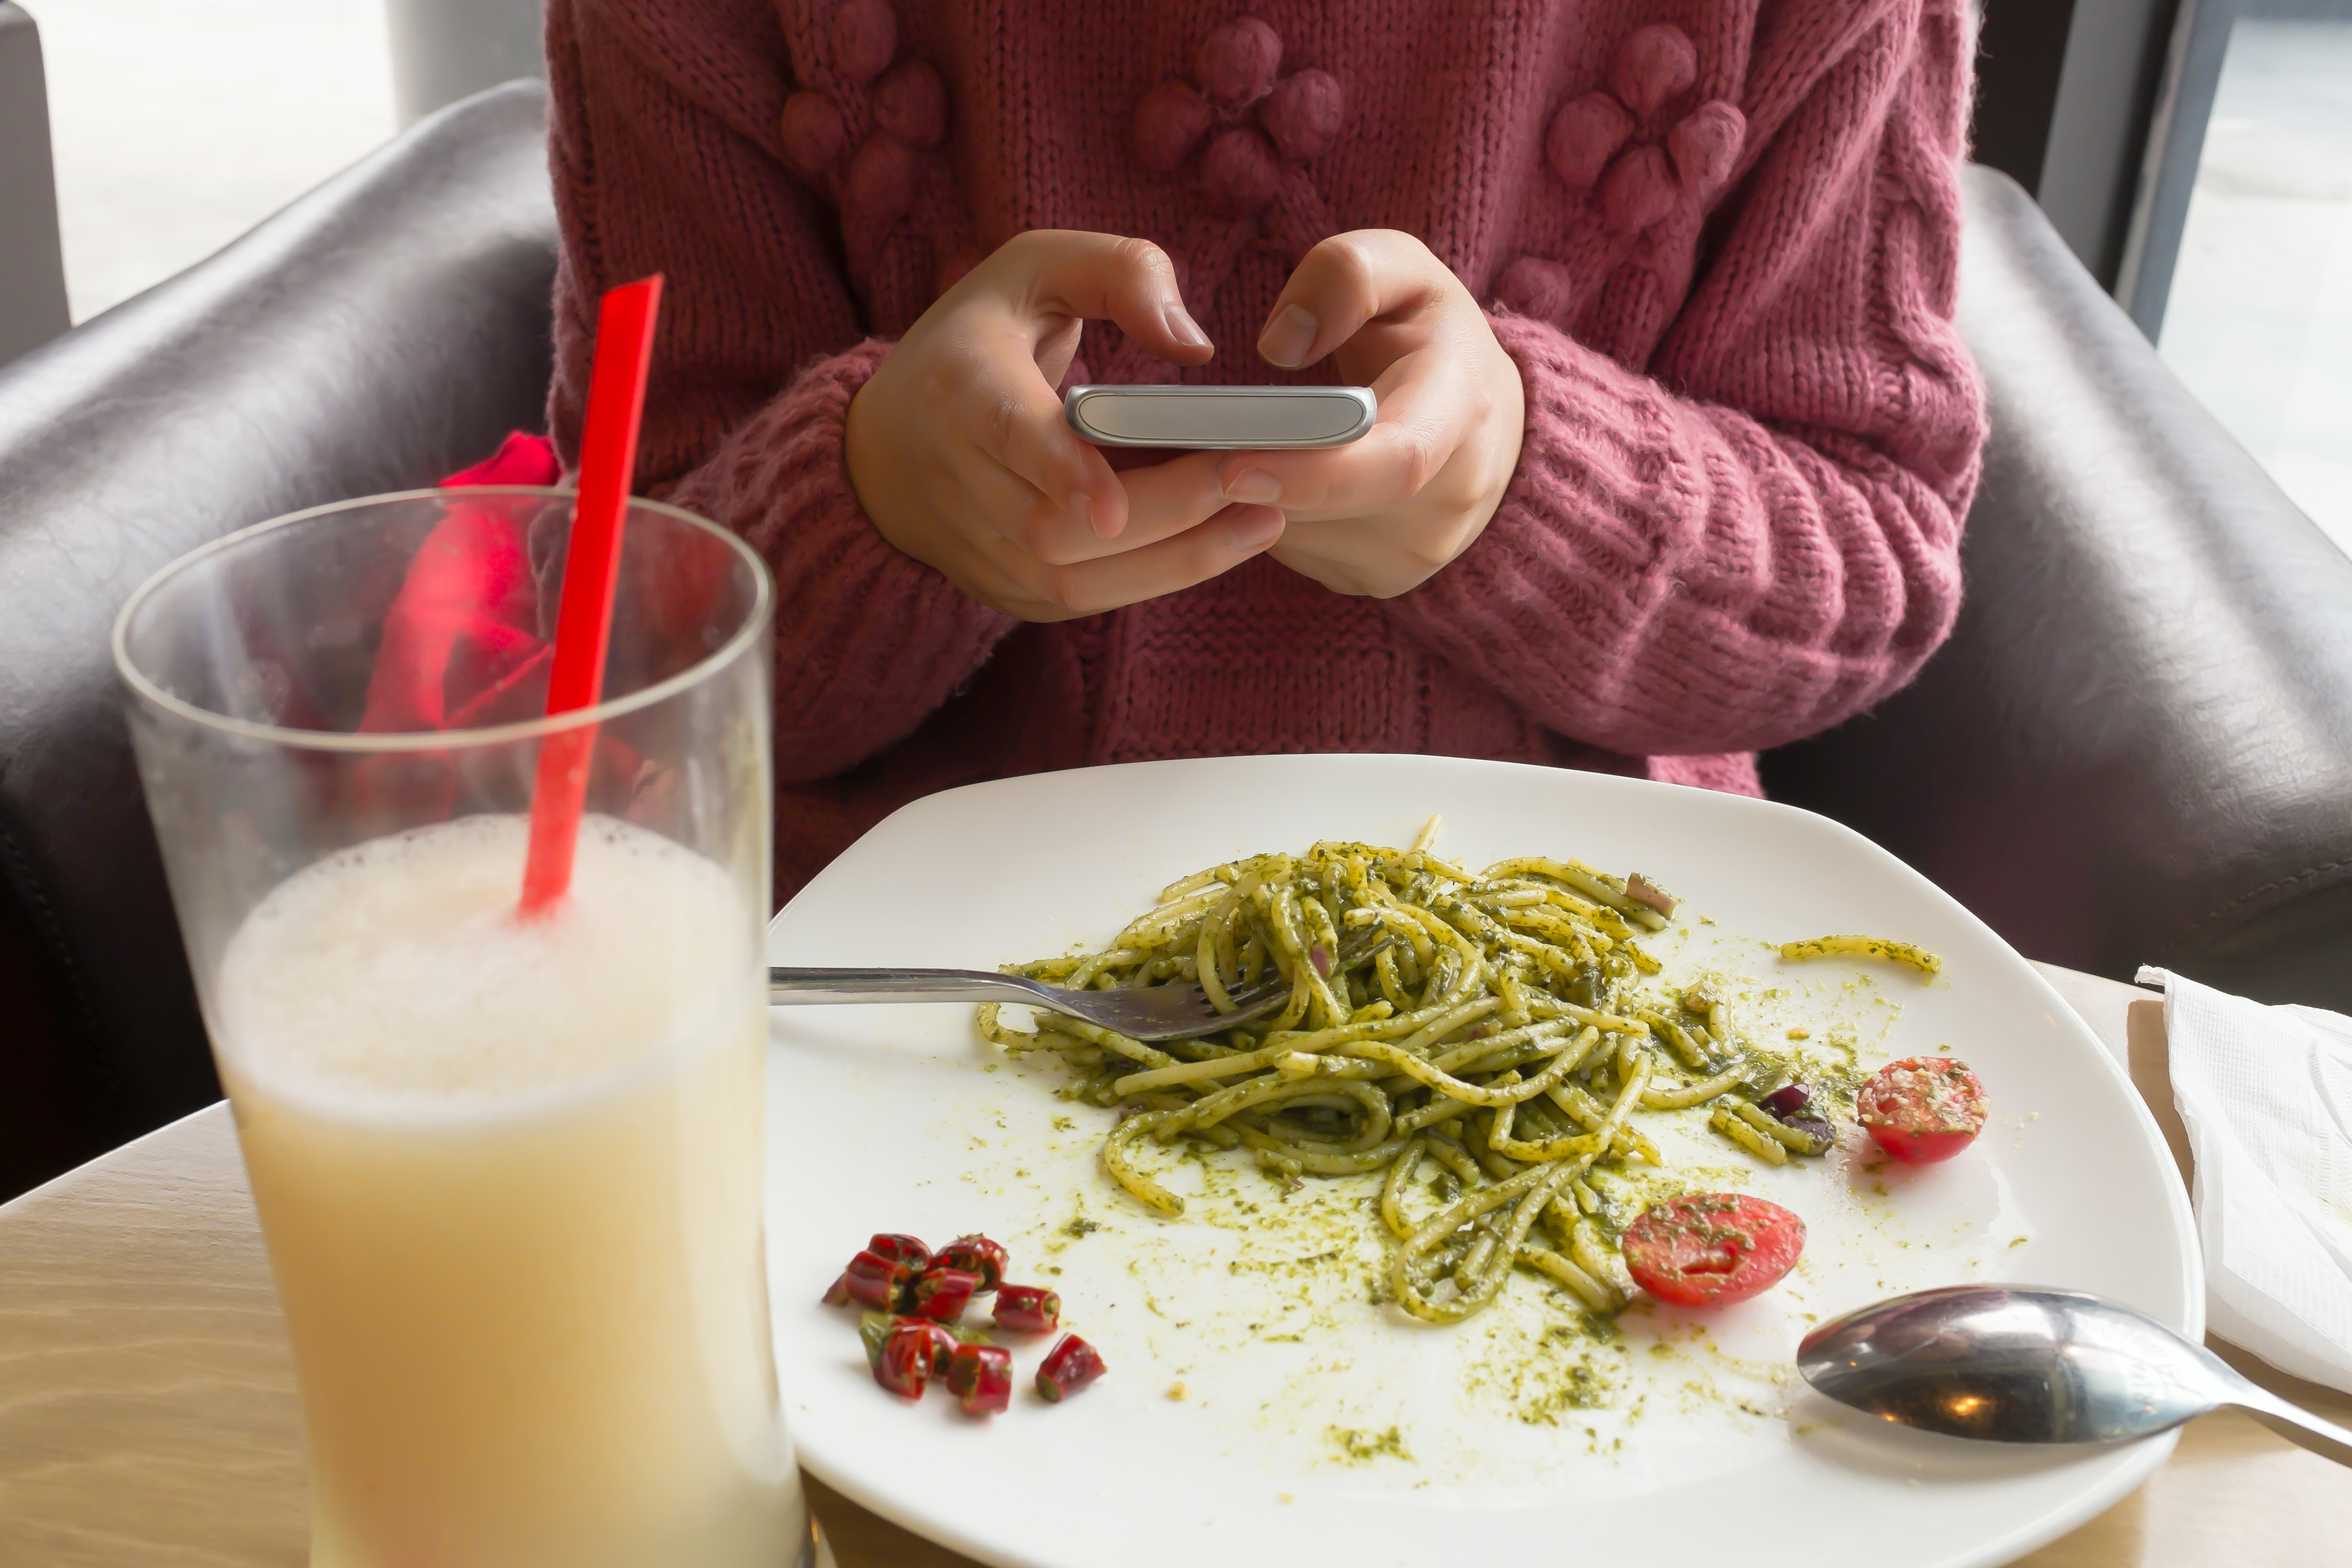 Confidence / On Phone at Meal